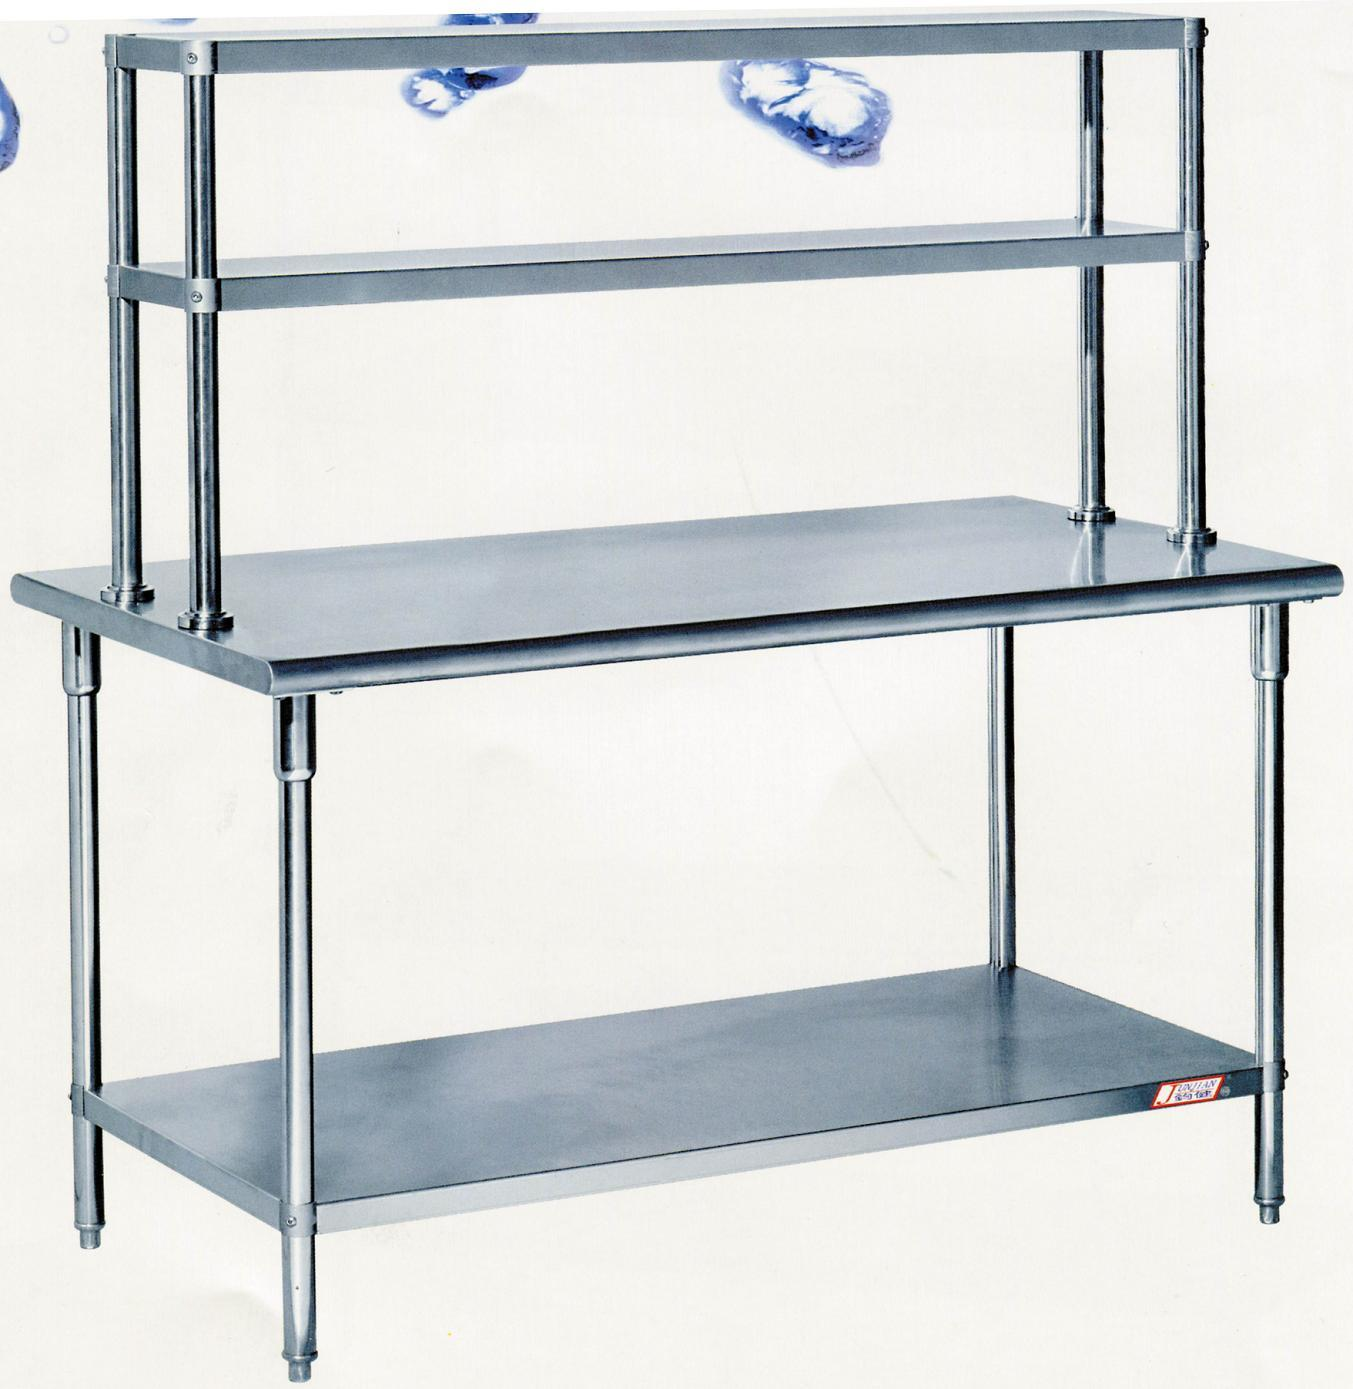 China Assembling Stainless Steel Work Table with Overshelves CZTS kitchen work tables Assembling Stainless Steel Work Table with Overshelves CZTS